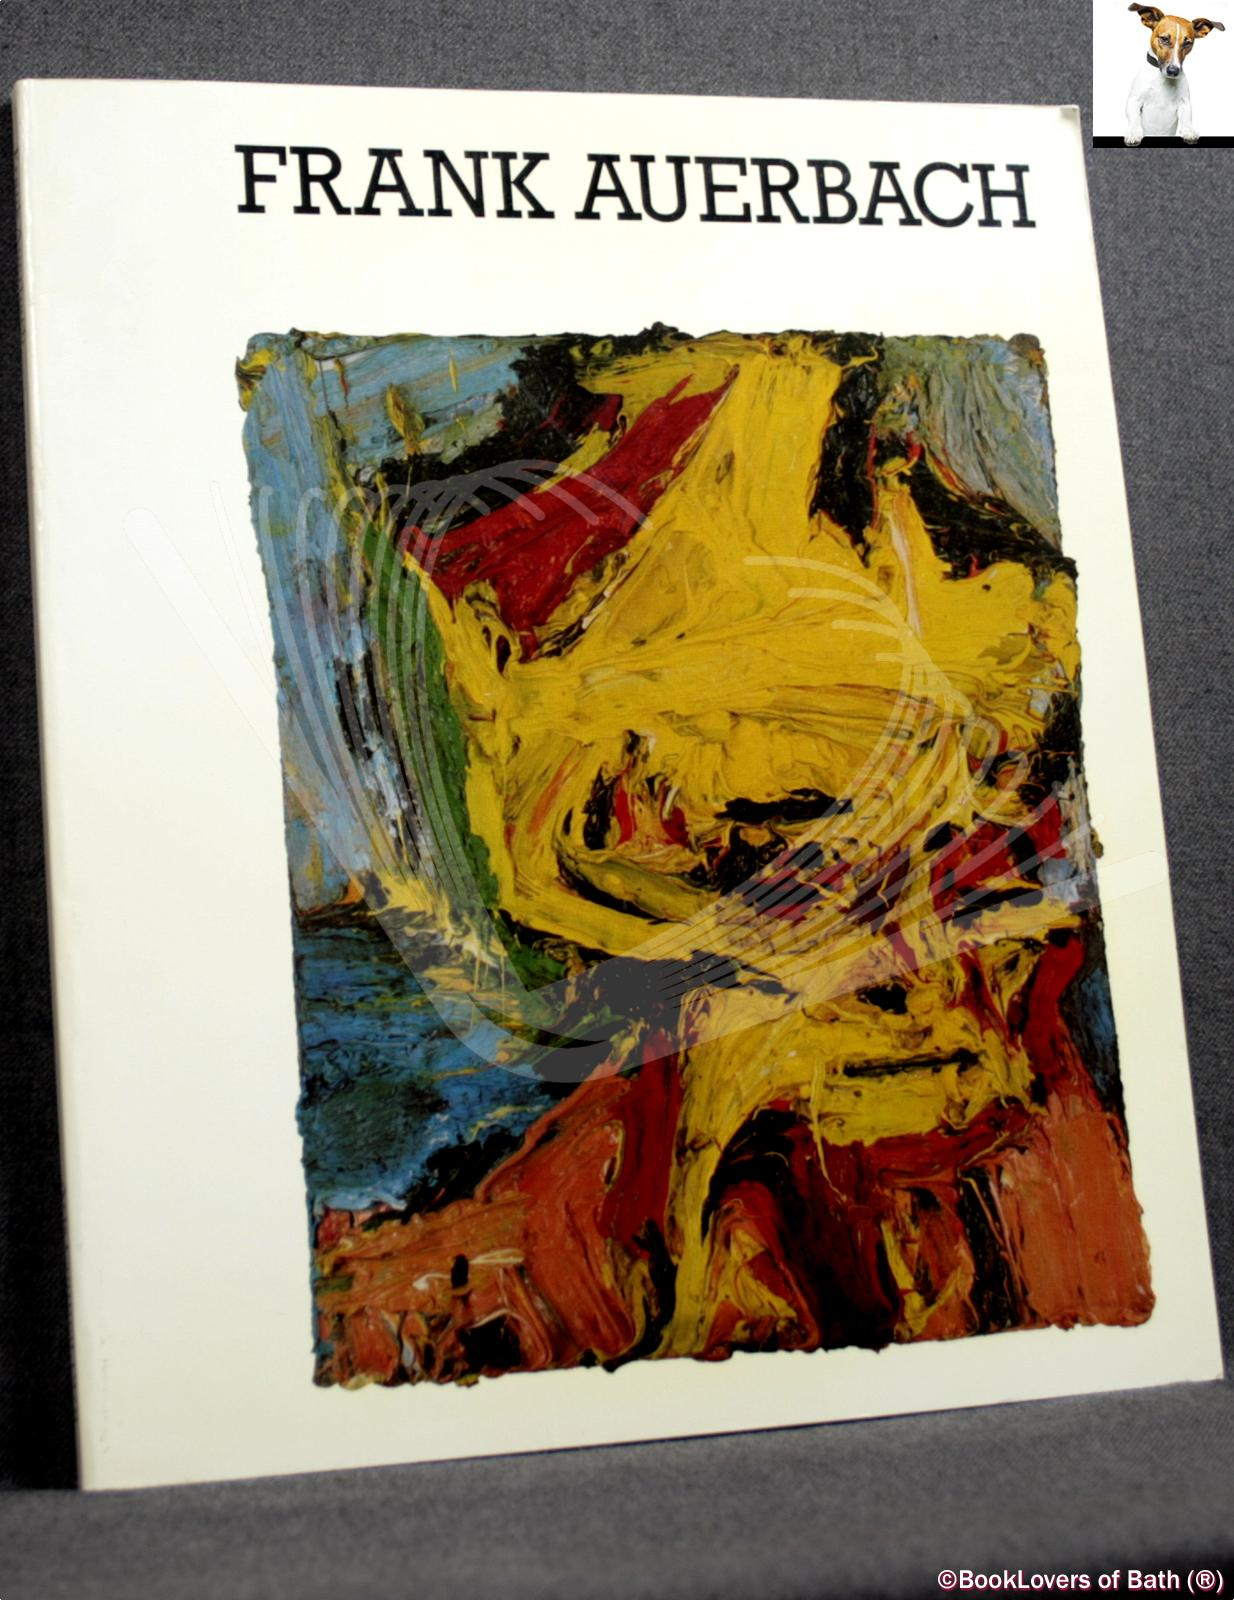 Frank Auerbach: Catalogue of an Exhibition Held at the Hayward Gallery, London, 4 May - 2 July 1978 and Fruit Market Gallery, Edinburgh, 15 July 12 August, 1978 - Frank Auerbach